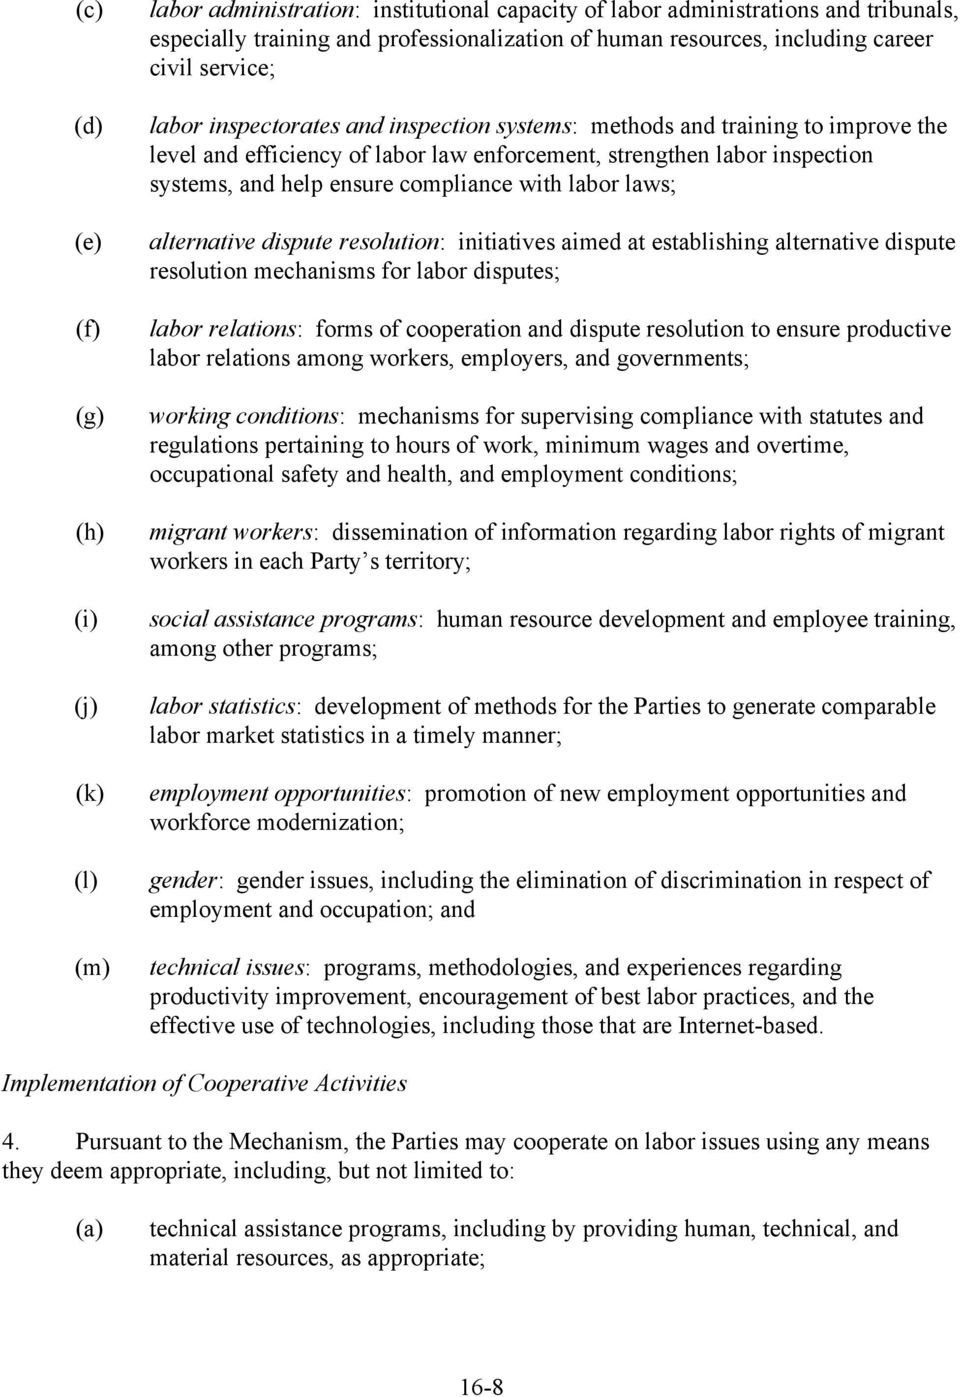 ensure compliance with labor laws; alternative dispute resolution: initiatives aimed at establishing alternative dispute resolution mechanisms for labor disputes; labor relations: forms of